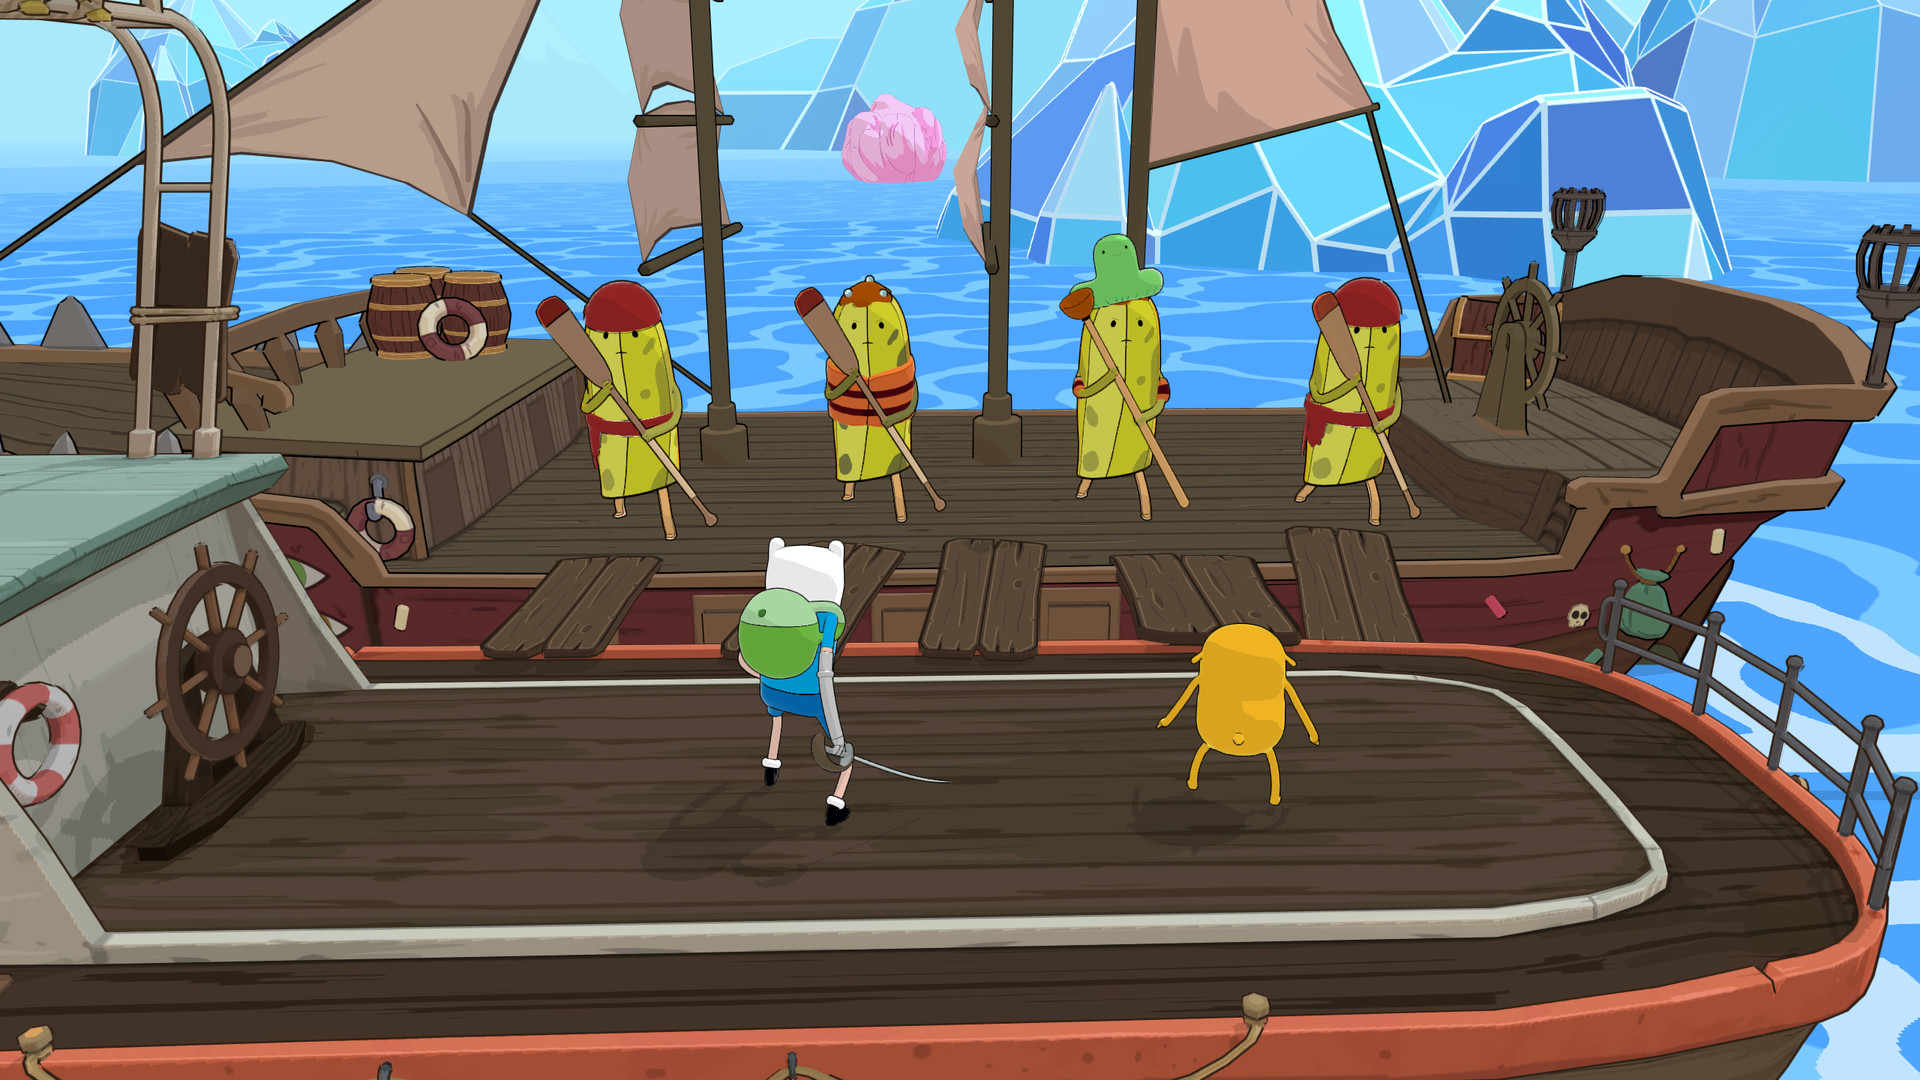 Resolve Any Adventure Time Pirates Of The Enchiridion Audio Issues Jpg 1920x1080 Xbox One Adventure Time